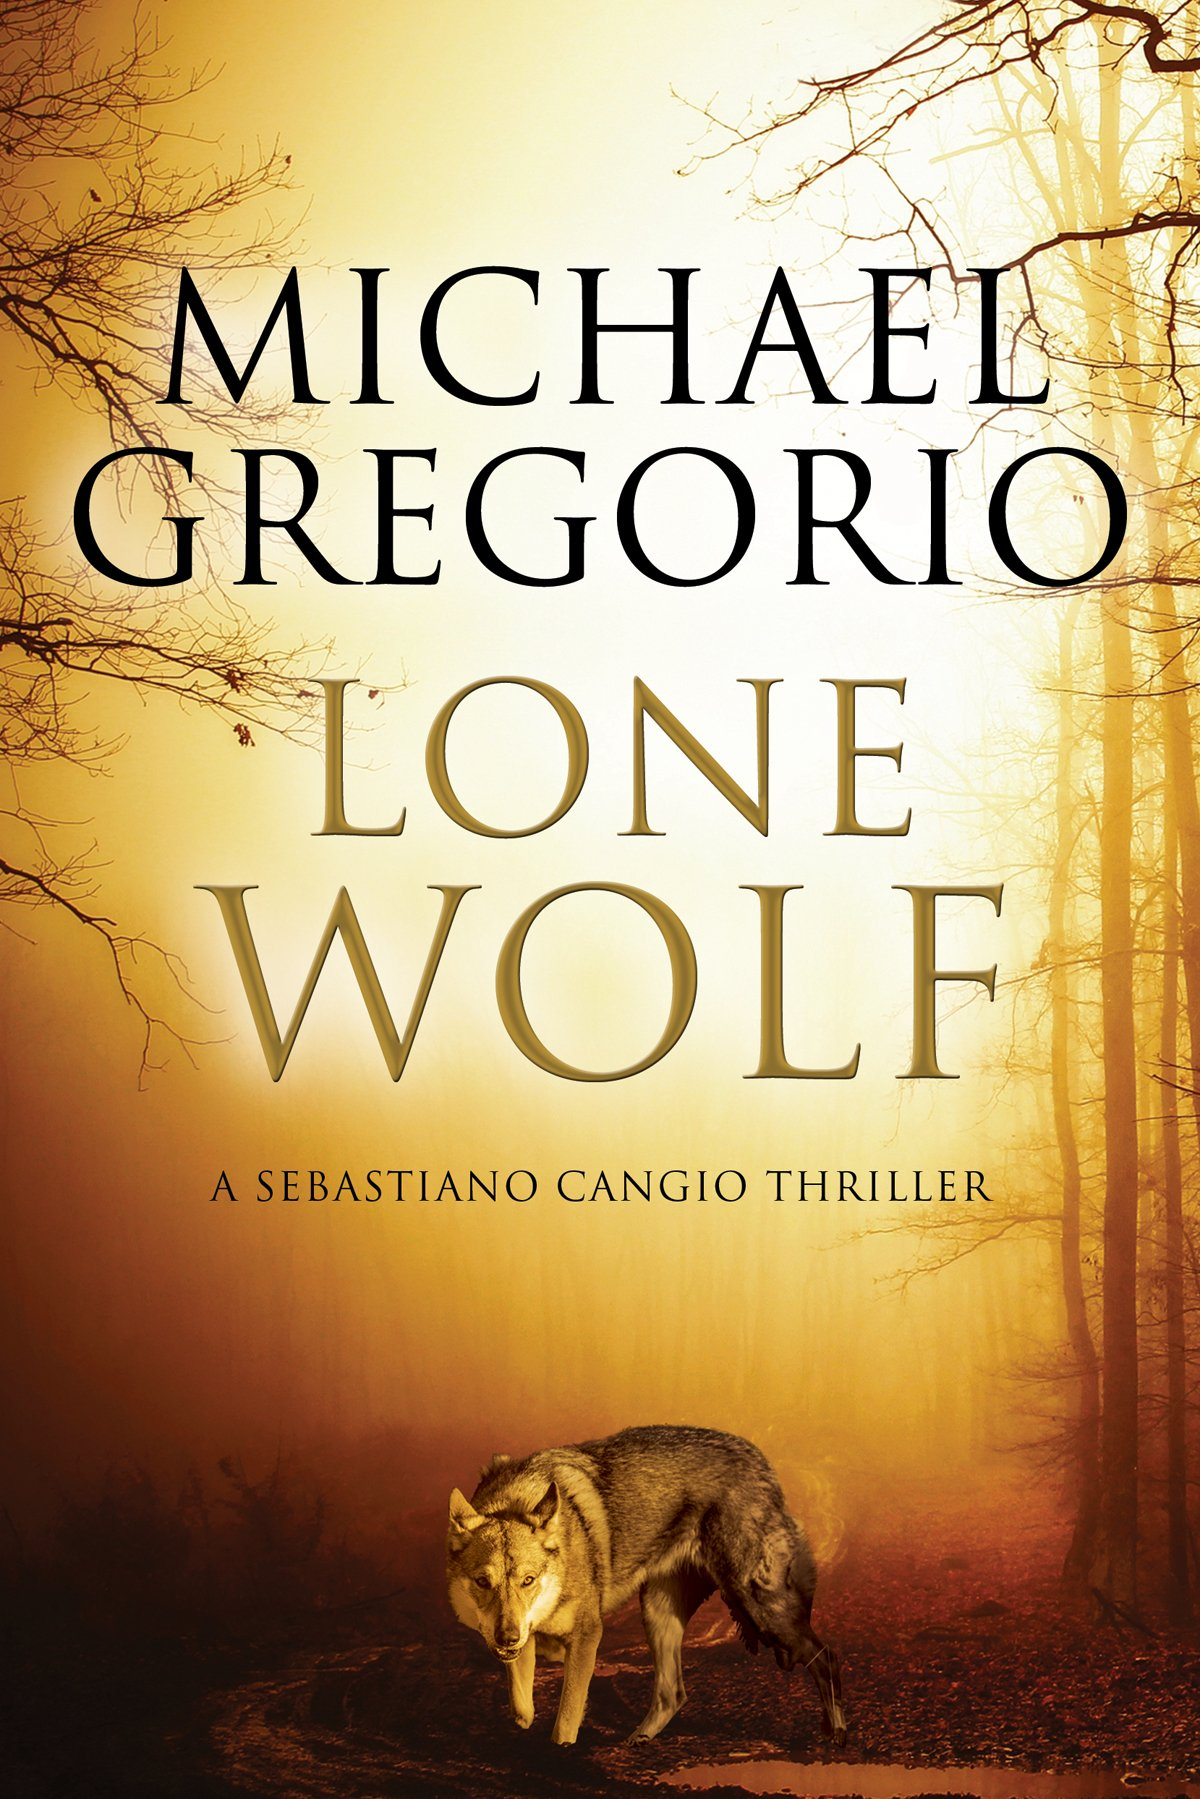 Crime Fiction: The Story Behind <i>Lone Wolf</i>